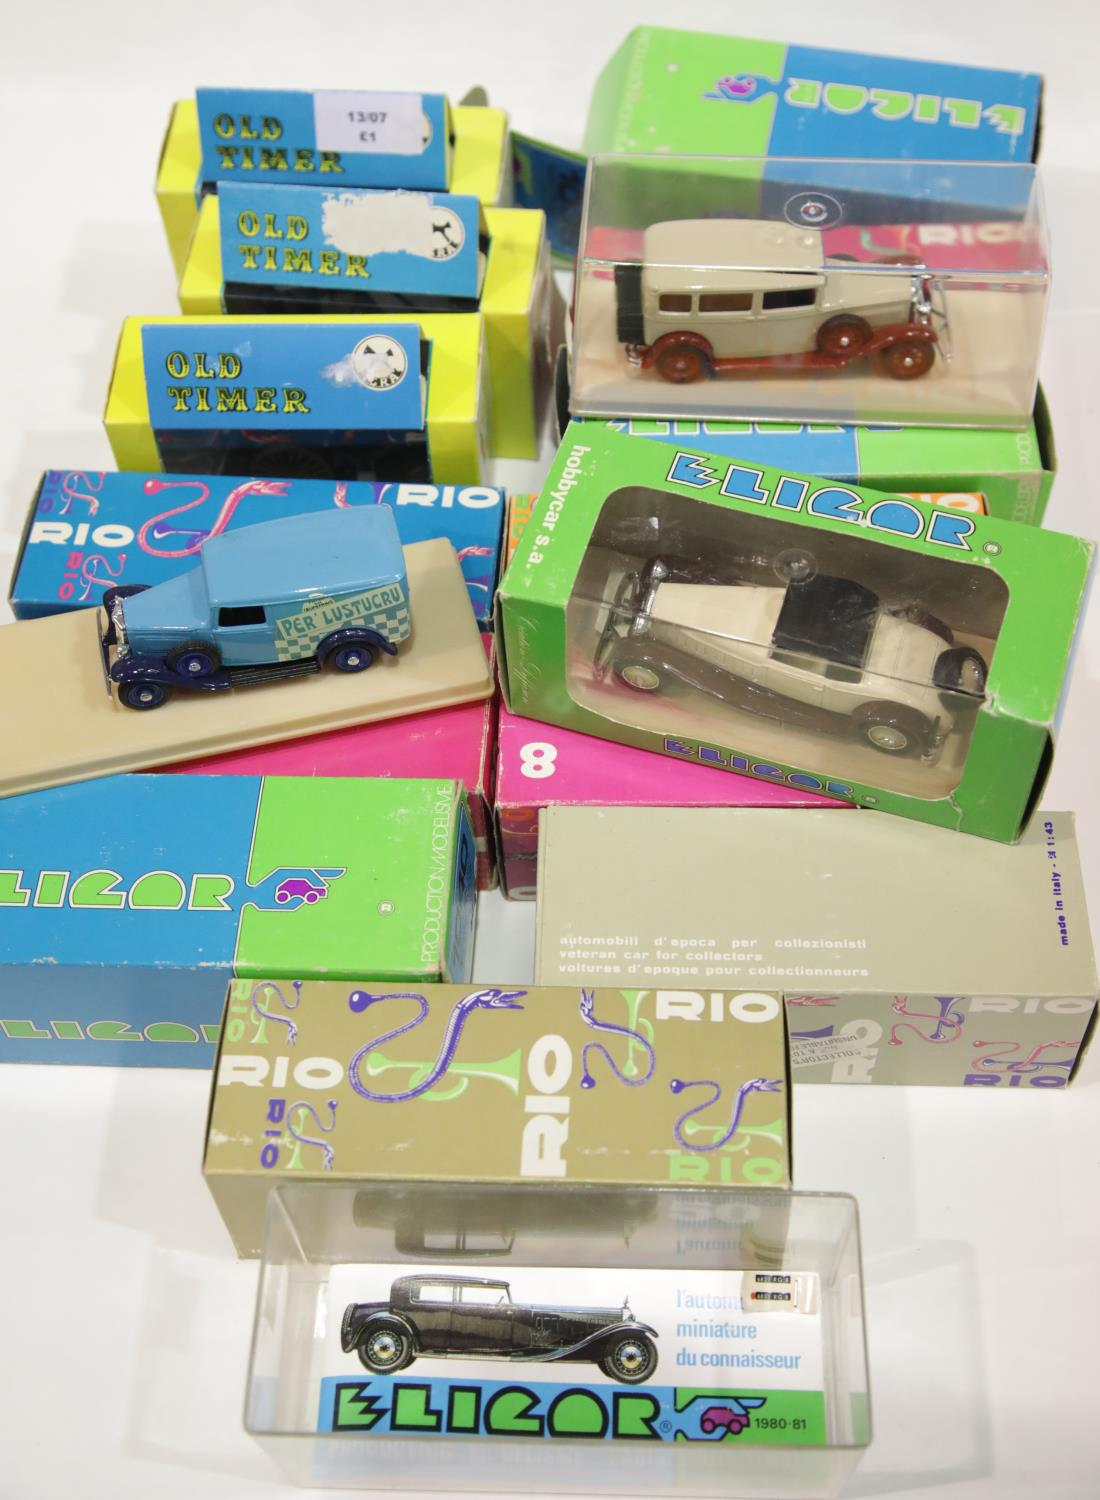 Lot 675 - Seven Rio, five Elagor and three Igra model vintage cars, all boxed. P&P Group 2 (£18+VAT for the